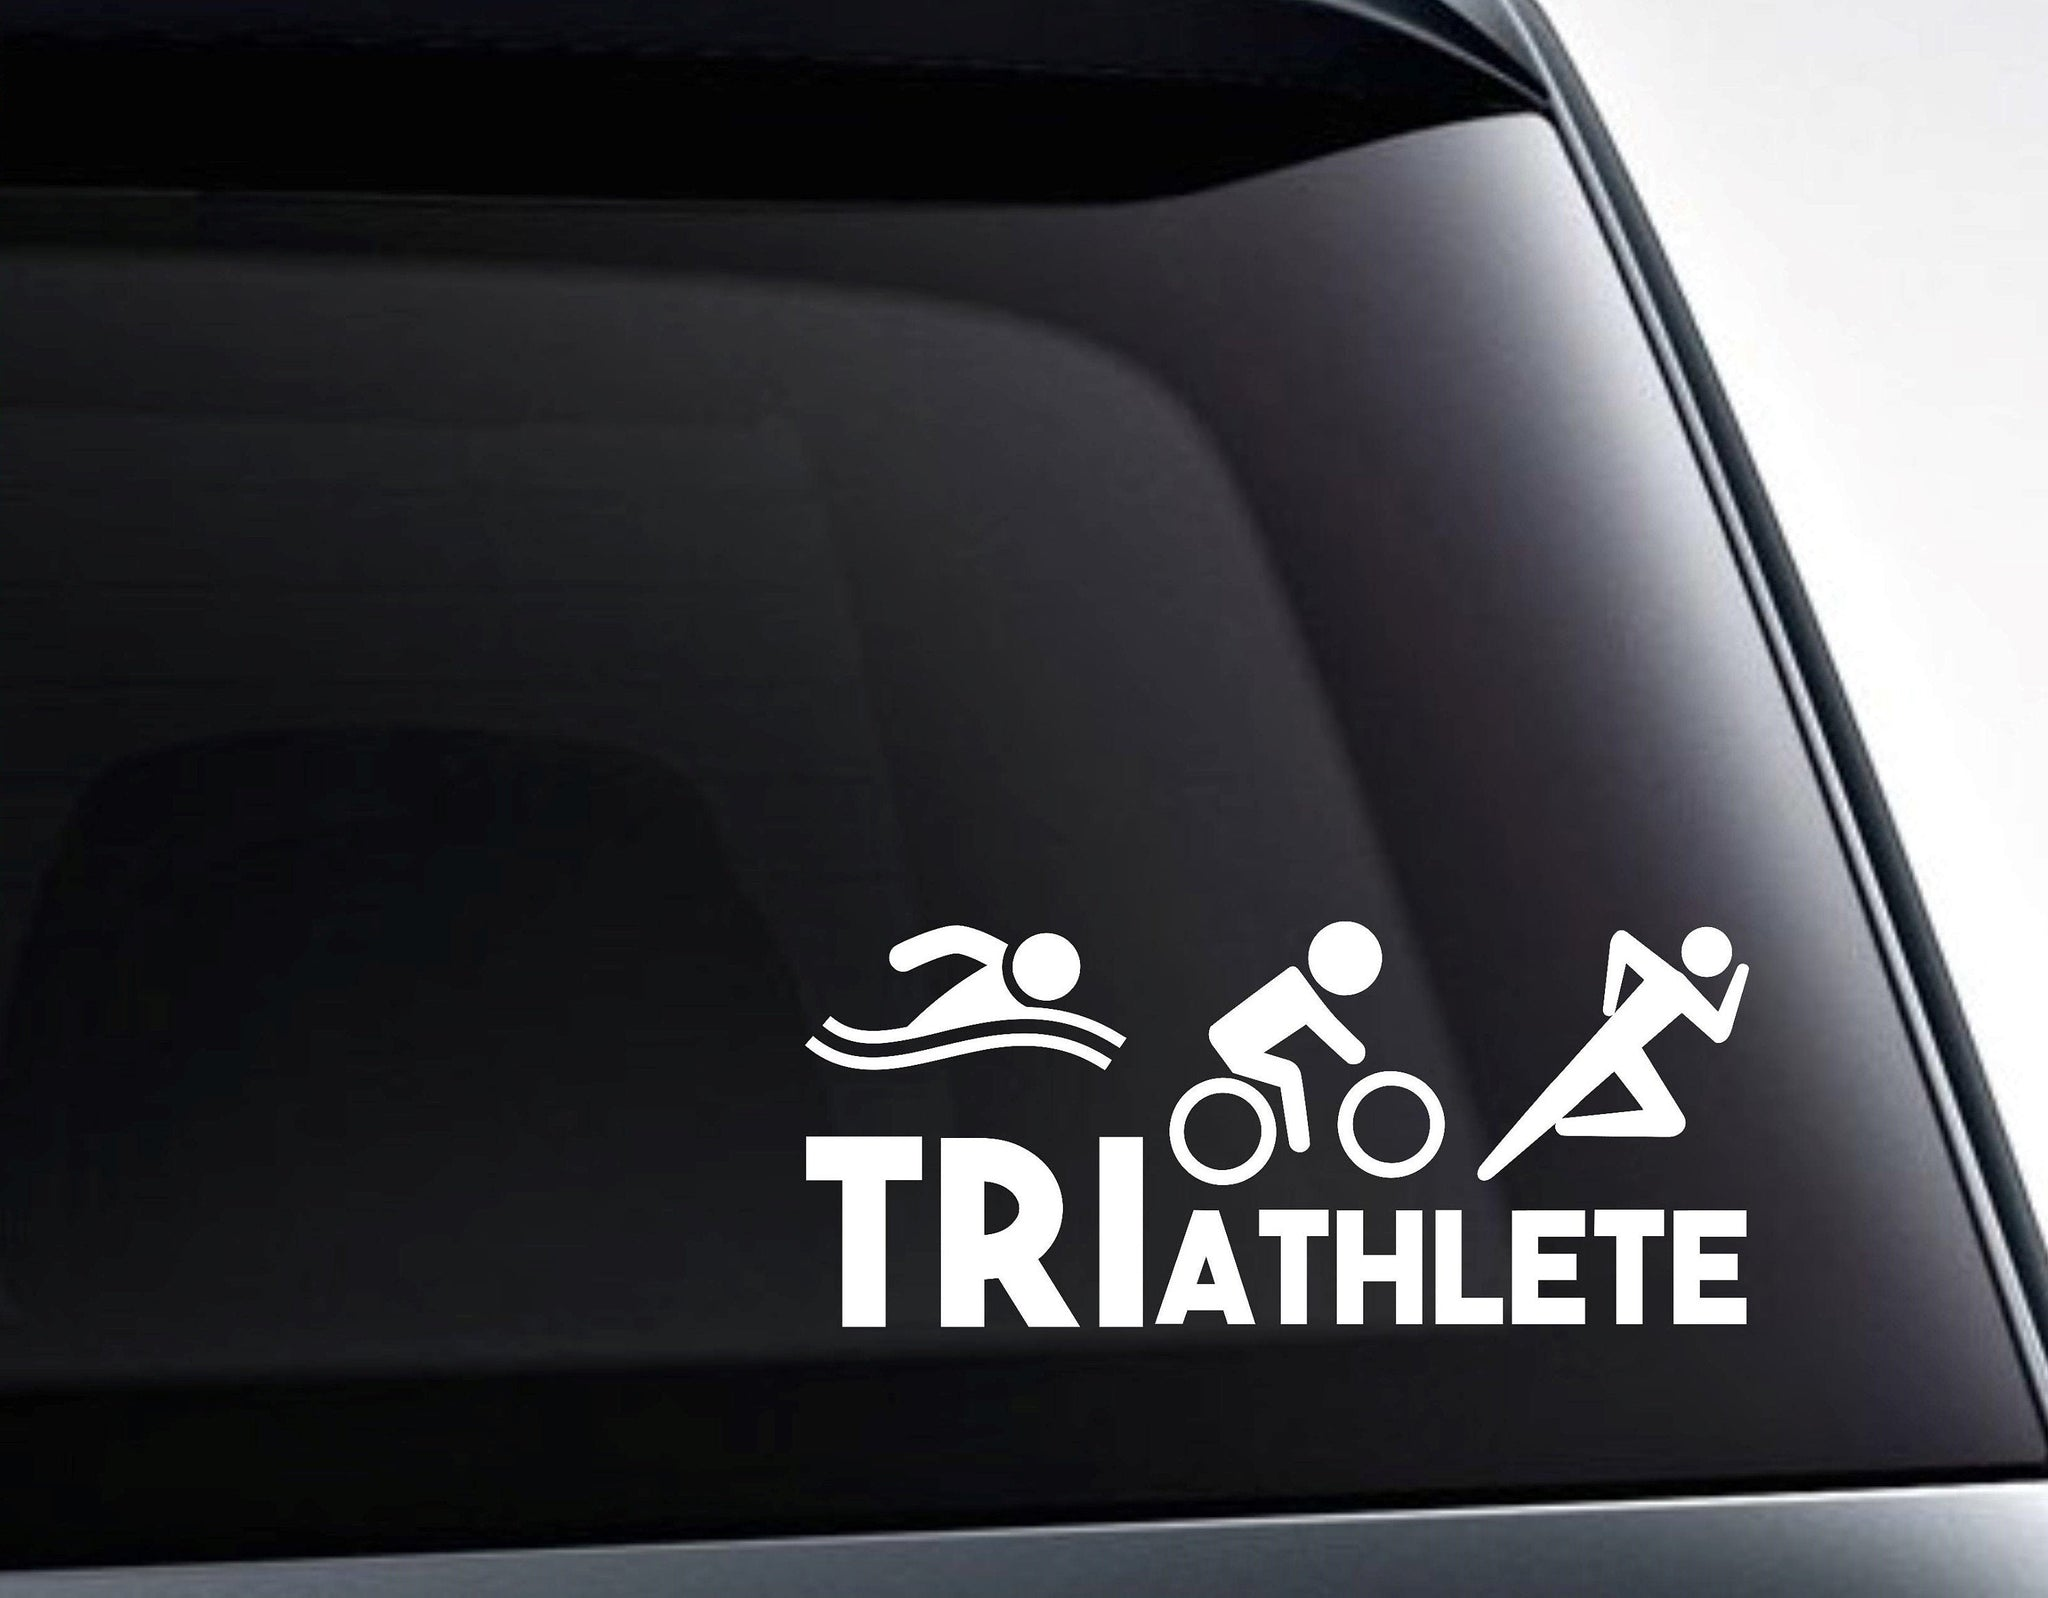 Triathlete Swim Bike Run Triathlon Vinyl Decal Sticker